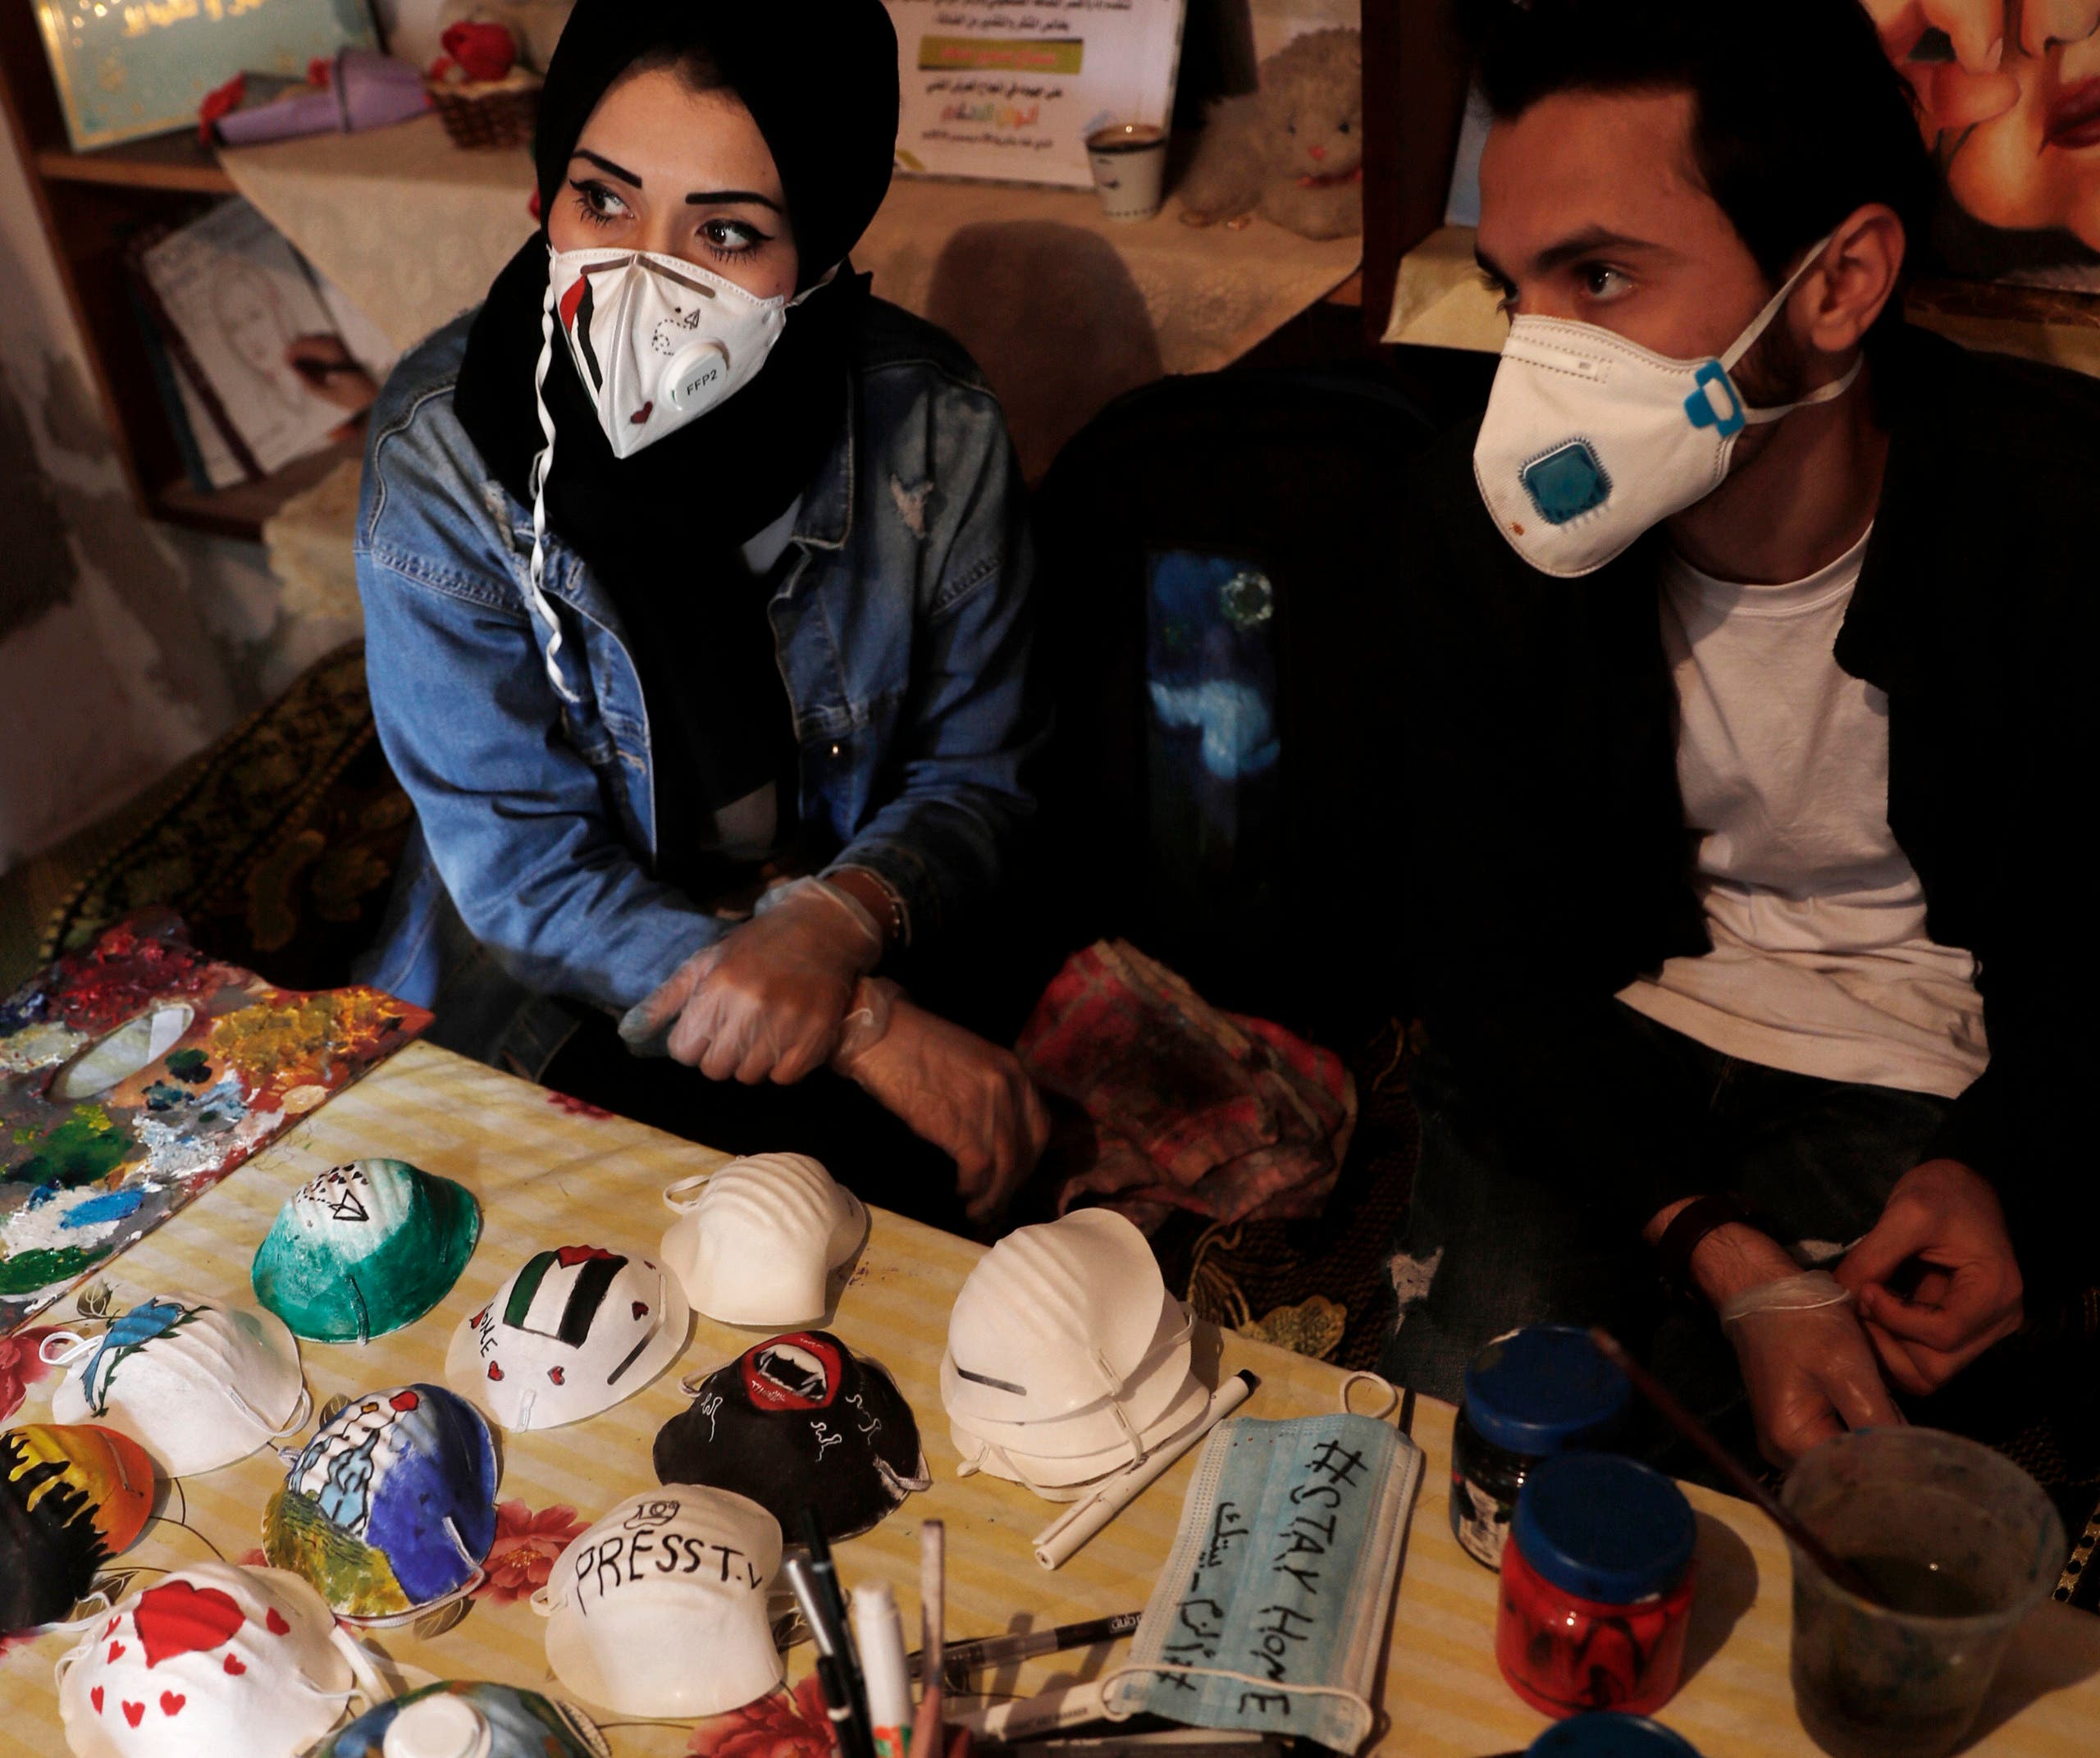 Palestinian artists Dorgham Qeraqea, left, and Samah Saed decorate protective face masks to encourage people to wear them as a precaution against the coronavirus, at a workshop in the Shijaiyah neighborhood of Gaza, Thursday, April 2, 2020. (AP)